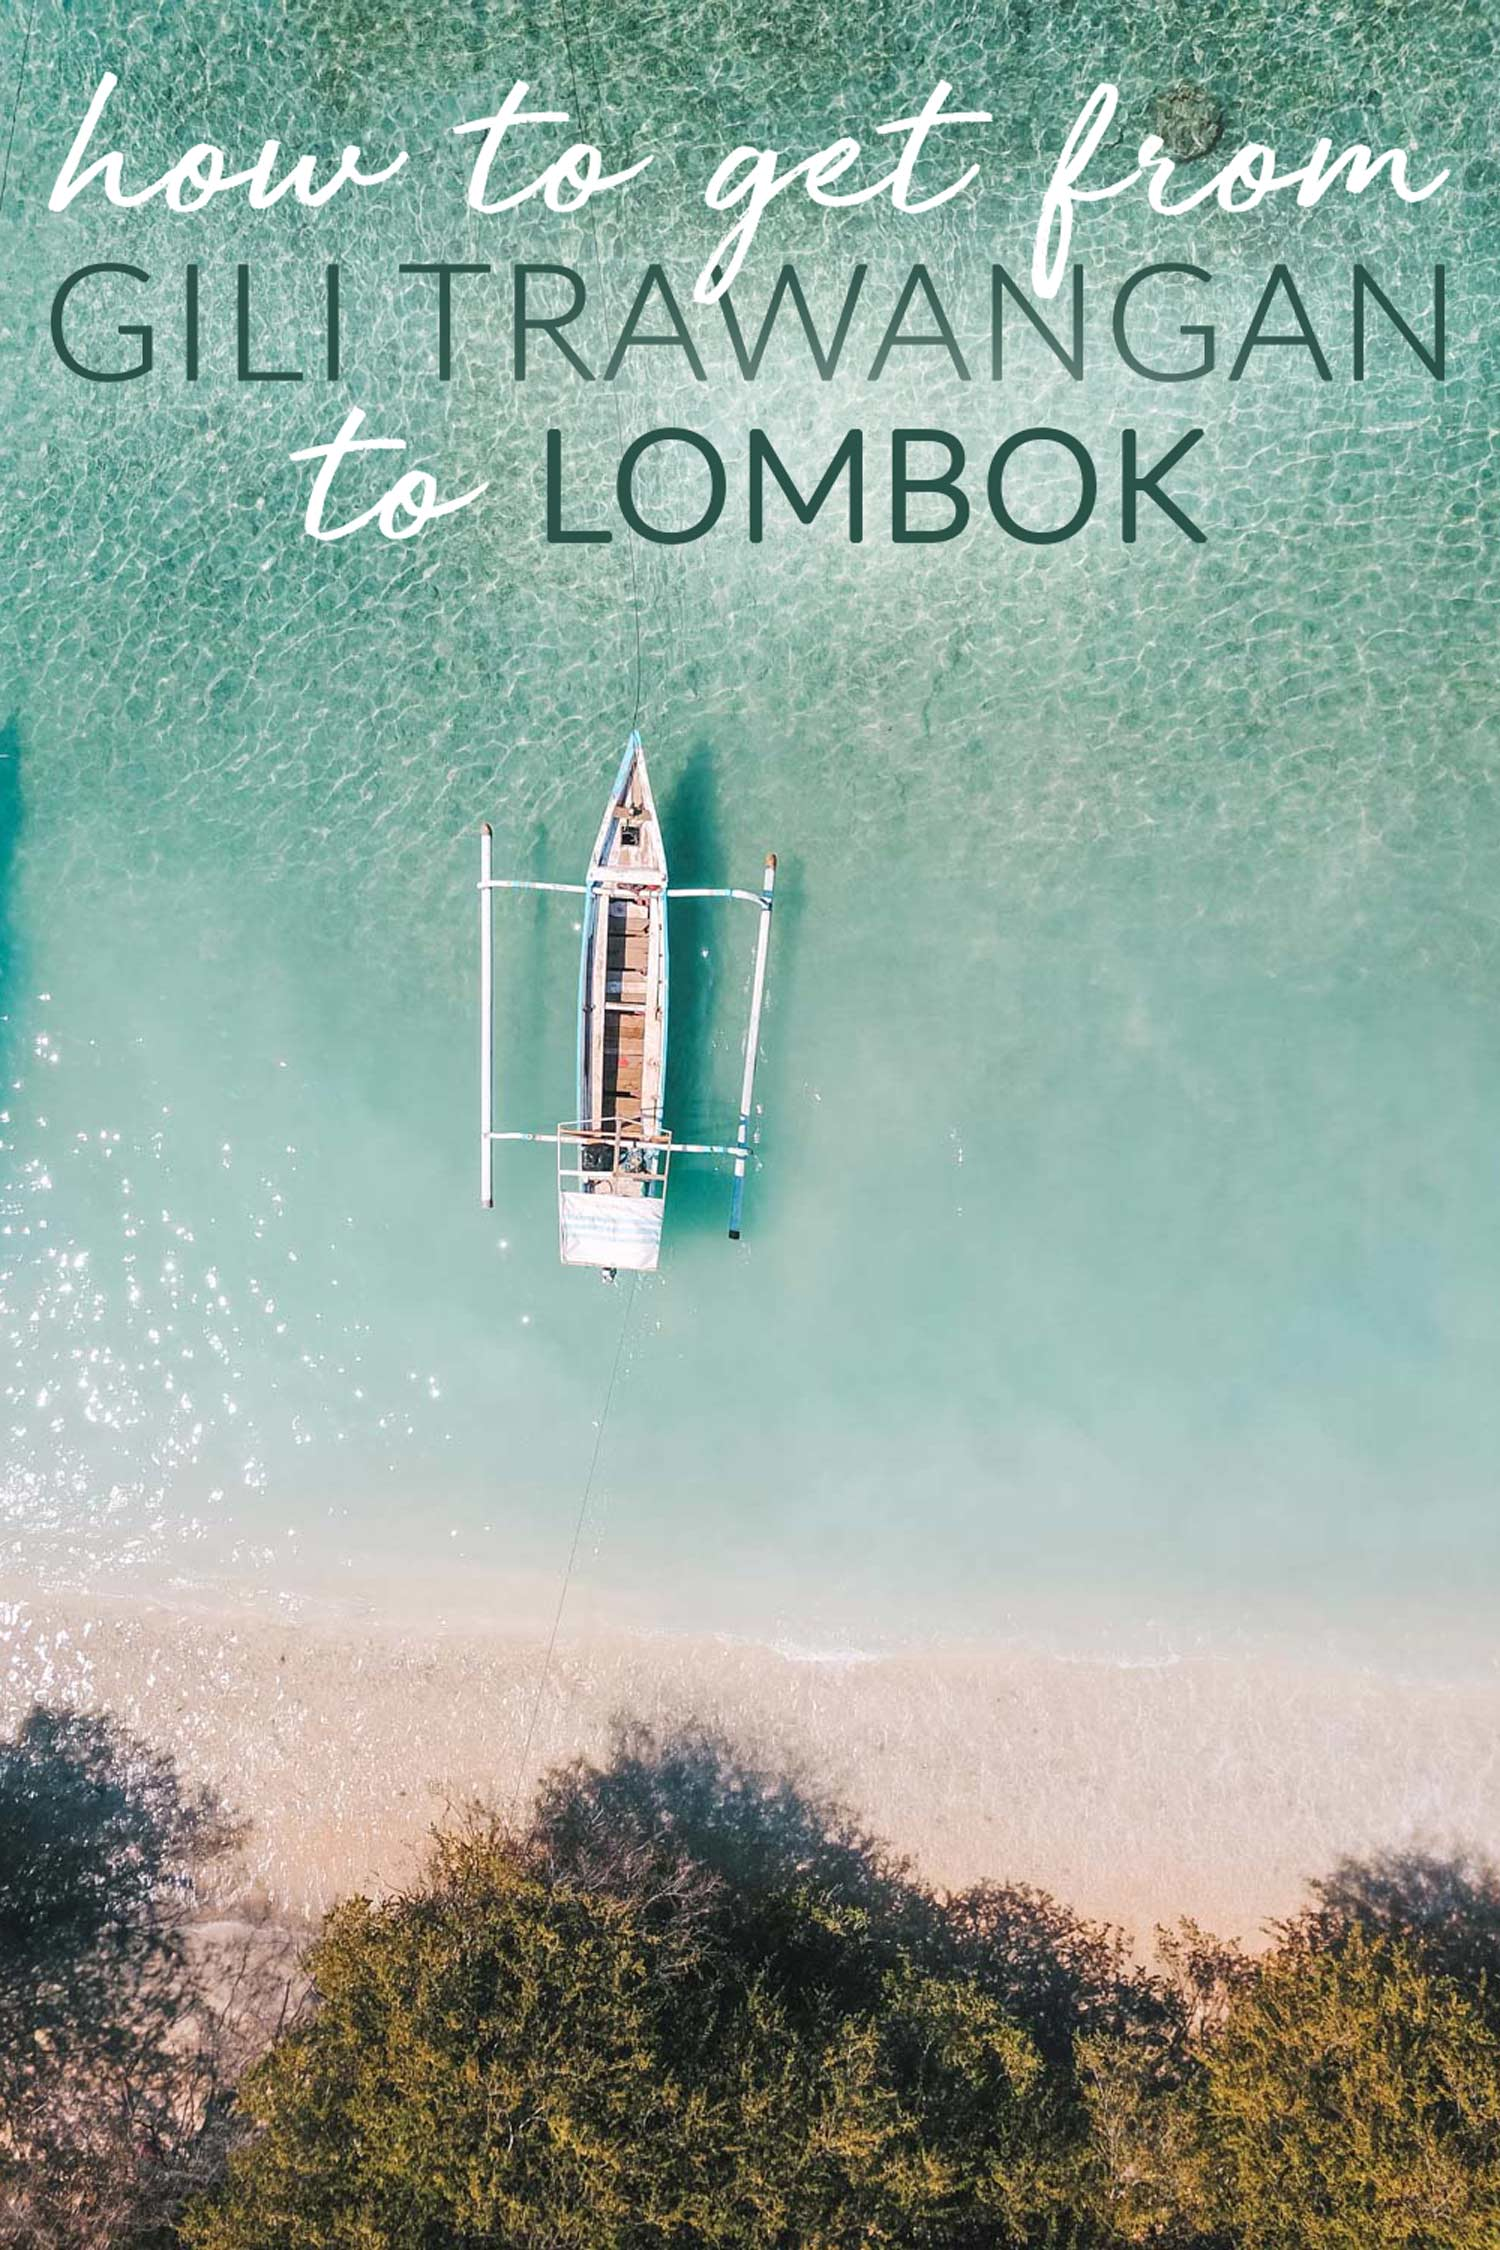 How to Get From Gili Trawangan to Lombok